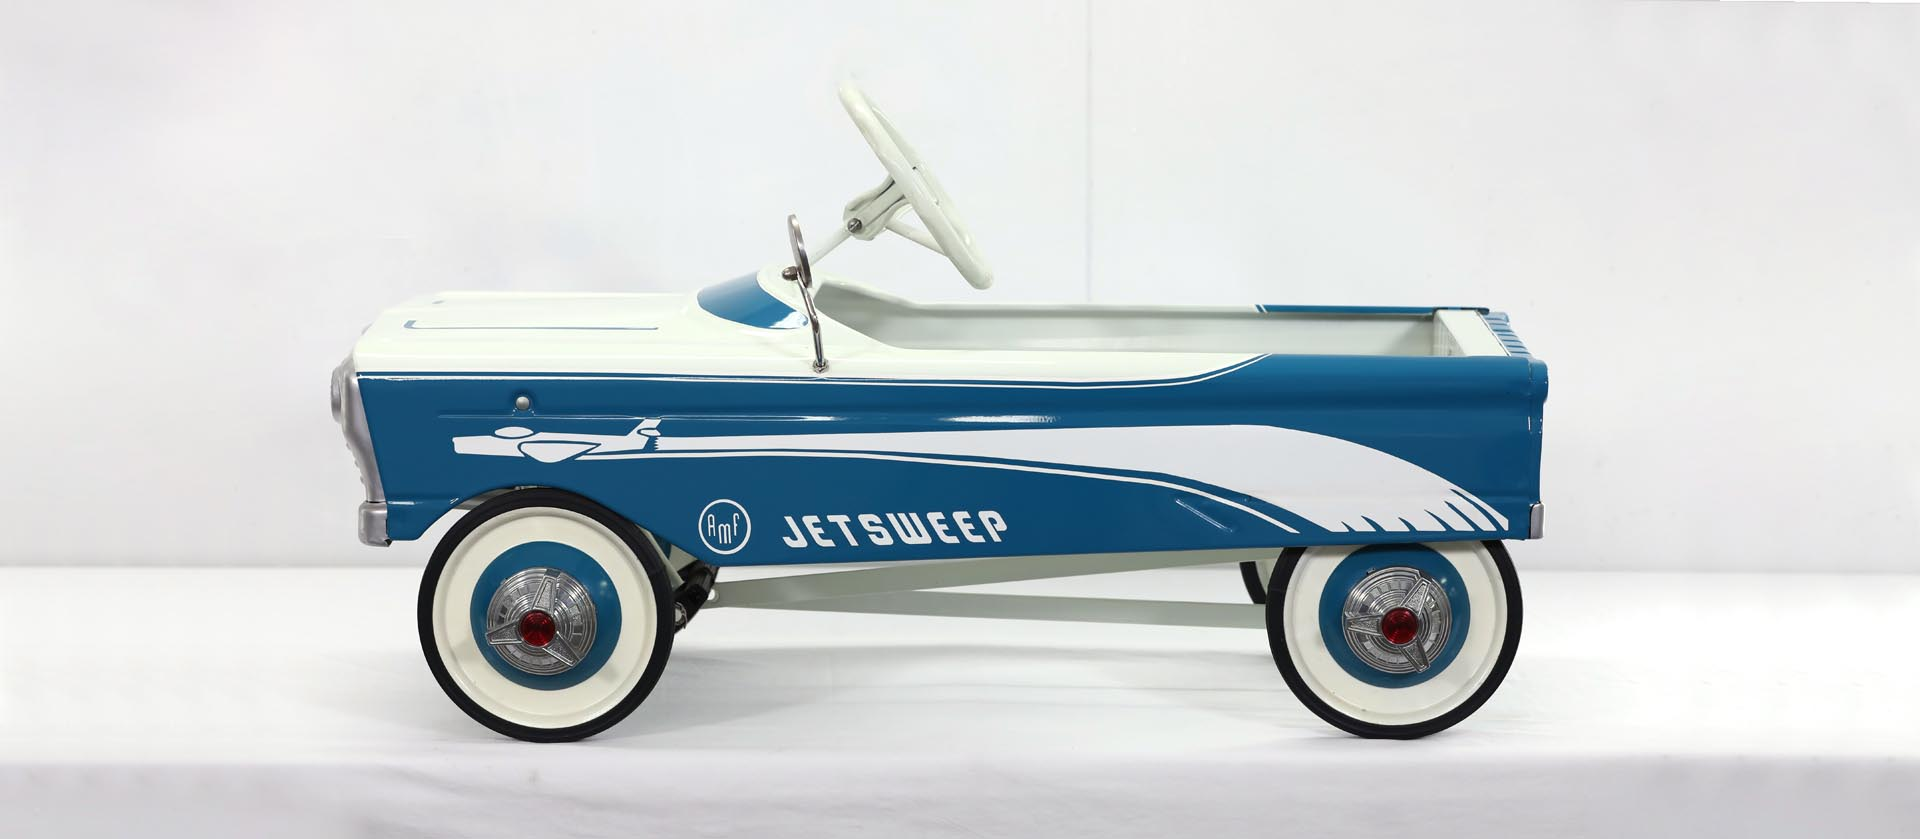 1960s Murray Jet Sweep Pedal Car